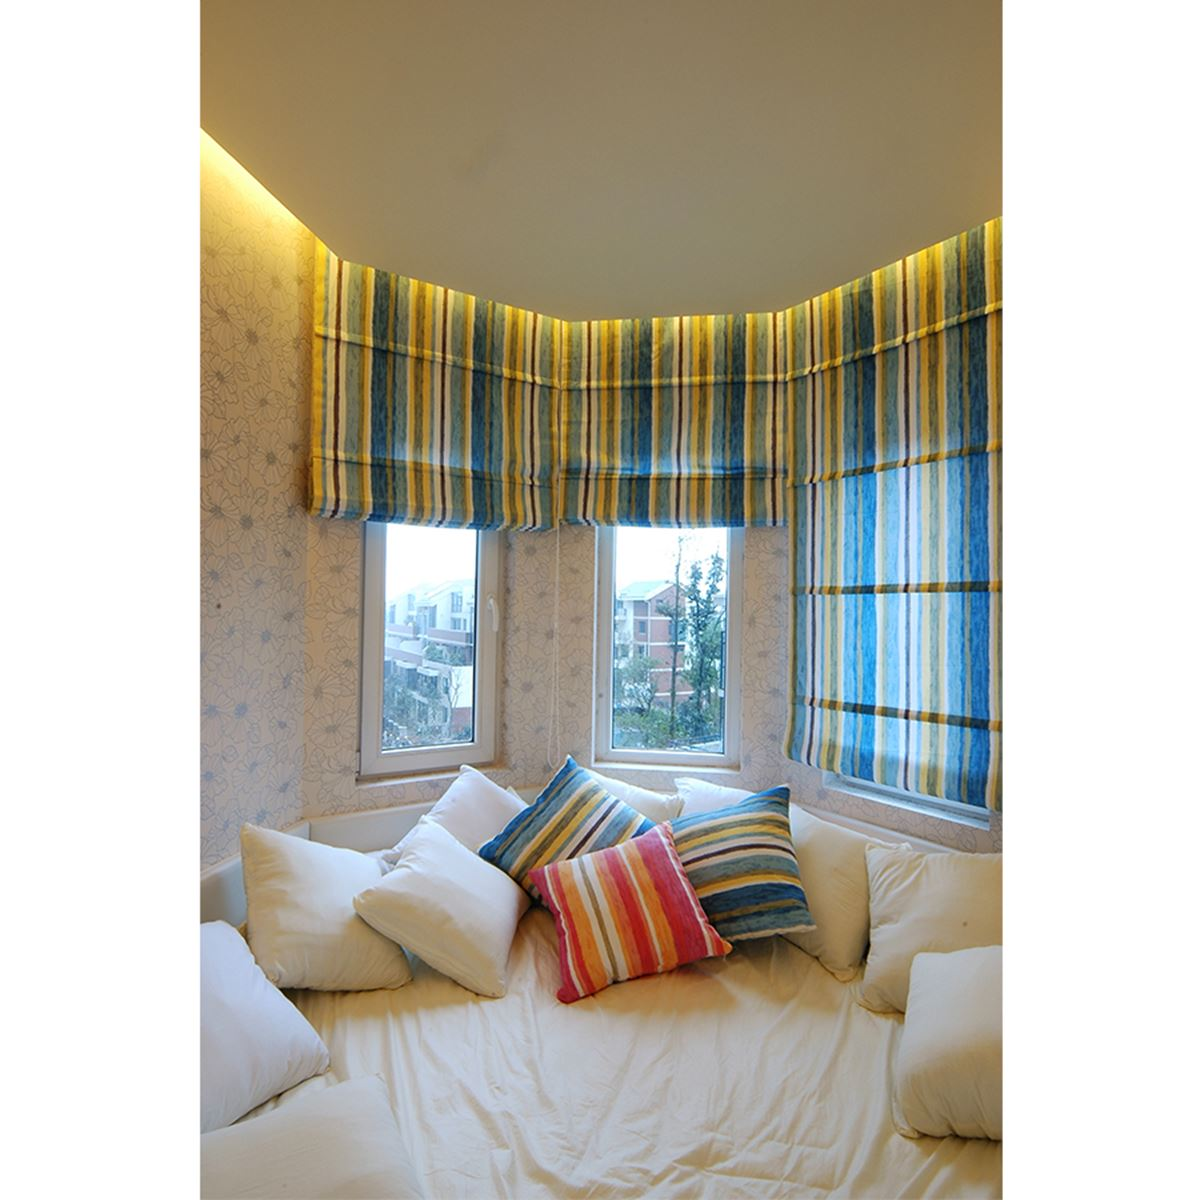 Click On Roman Blinds To Find Out More Of Its Elegance Design.